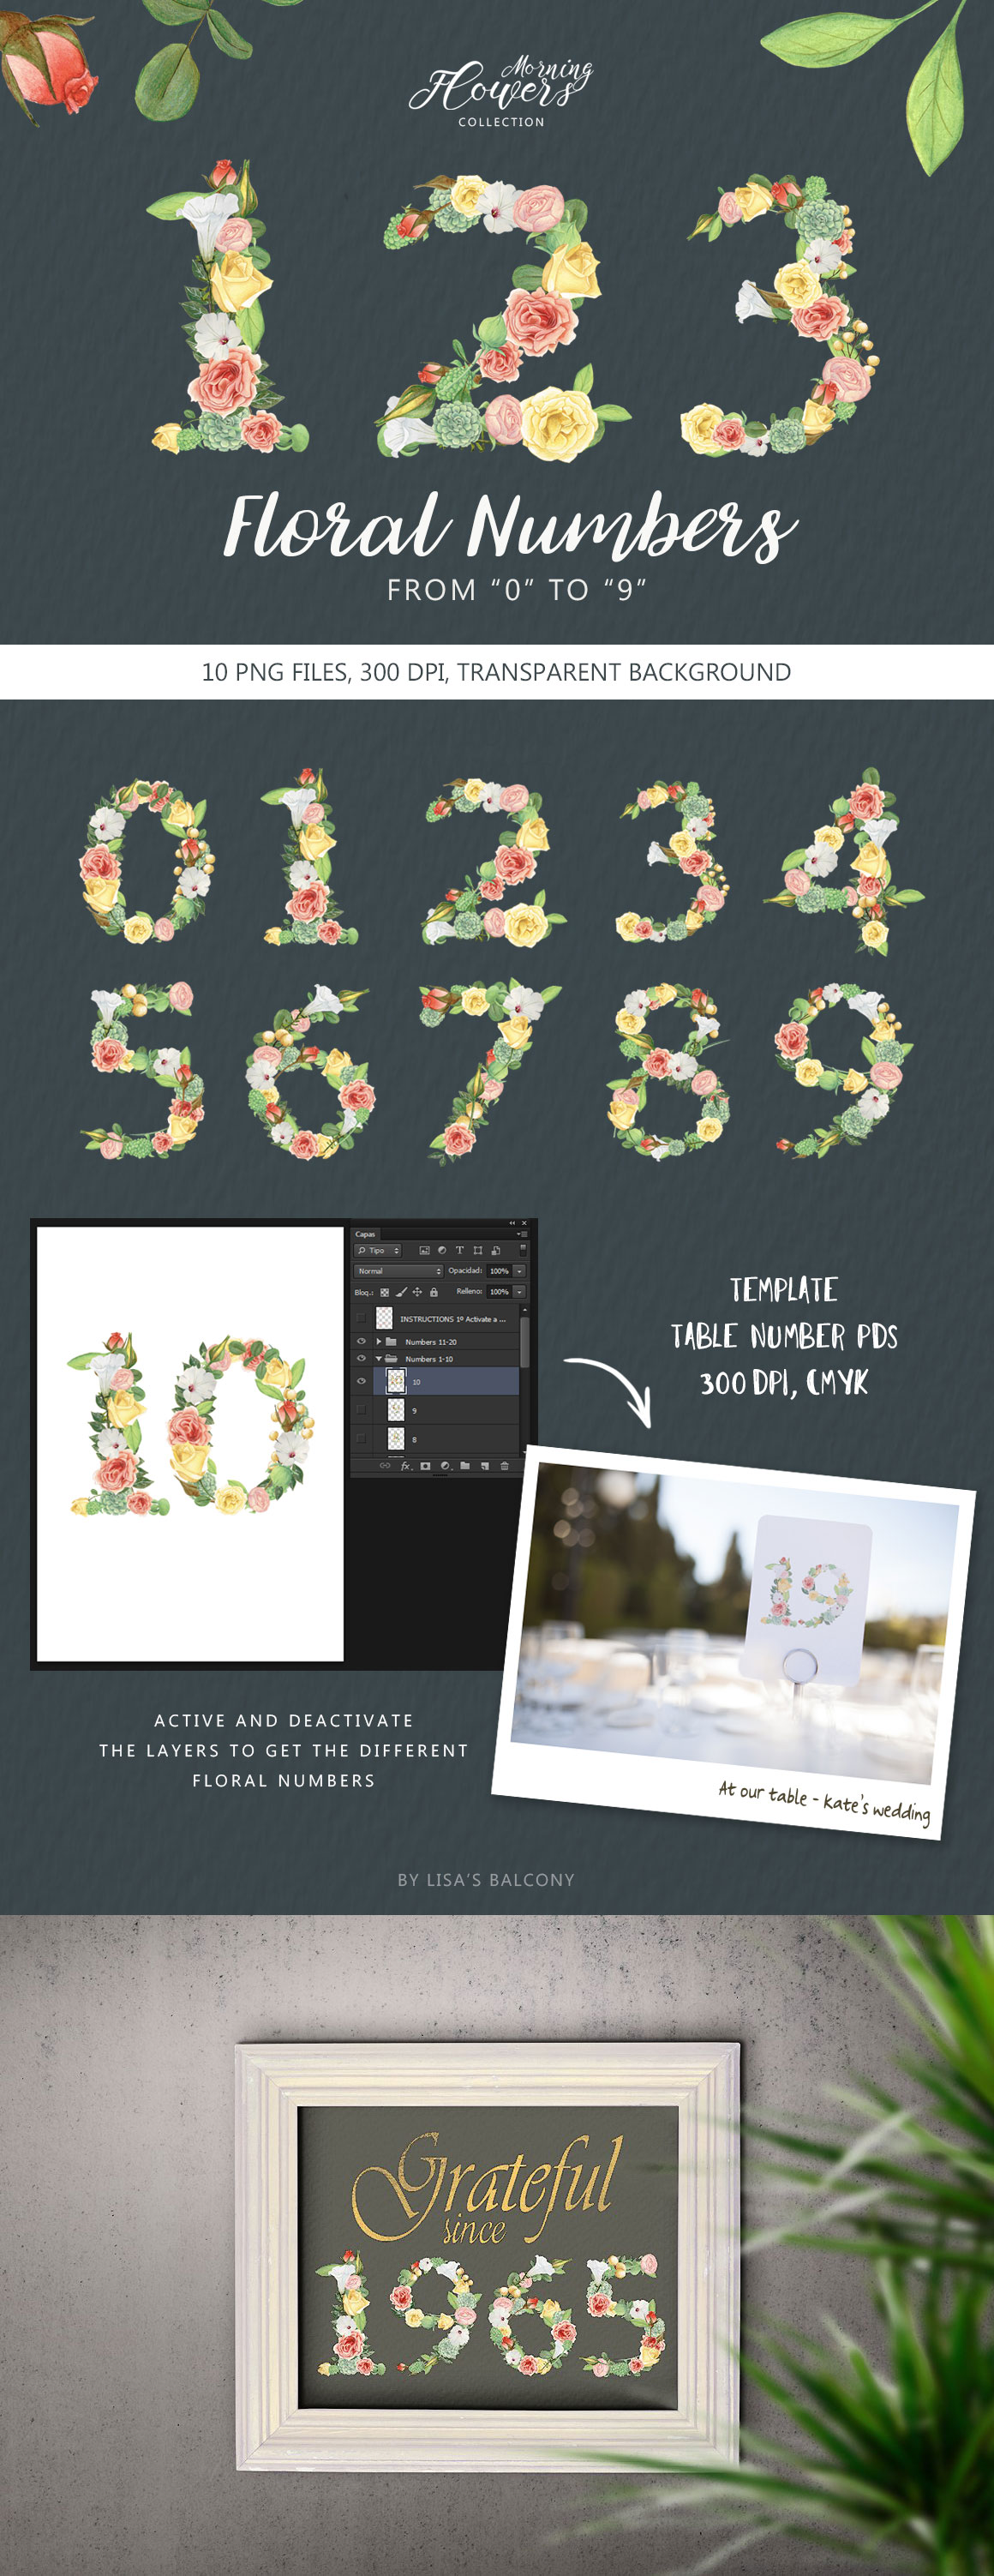 Floral-Numbers-Cover-long-by-Lisa's-Balcony.jpg